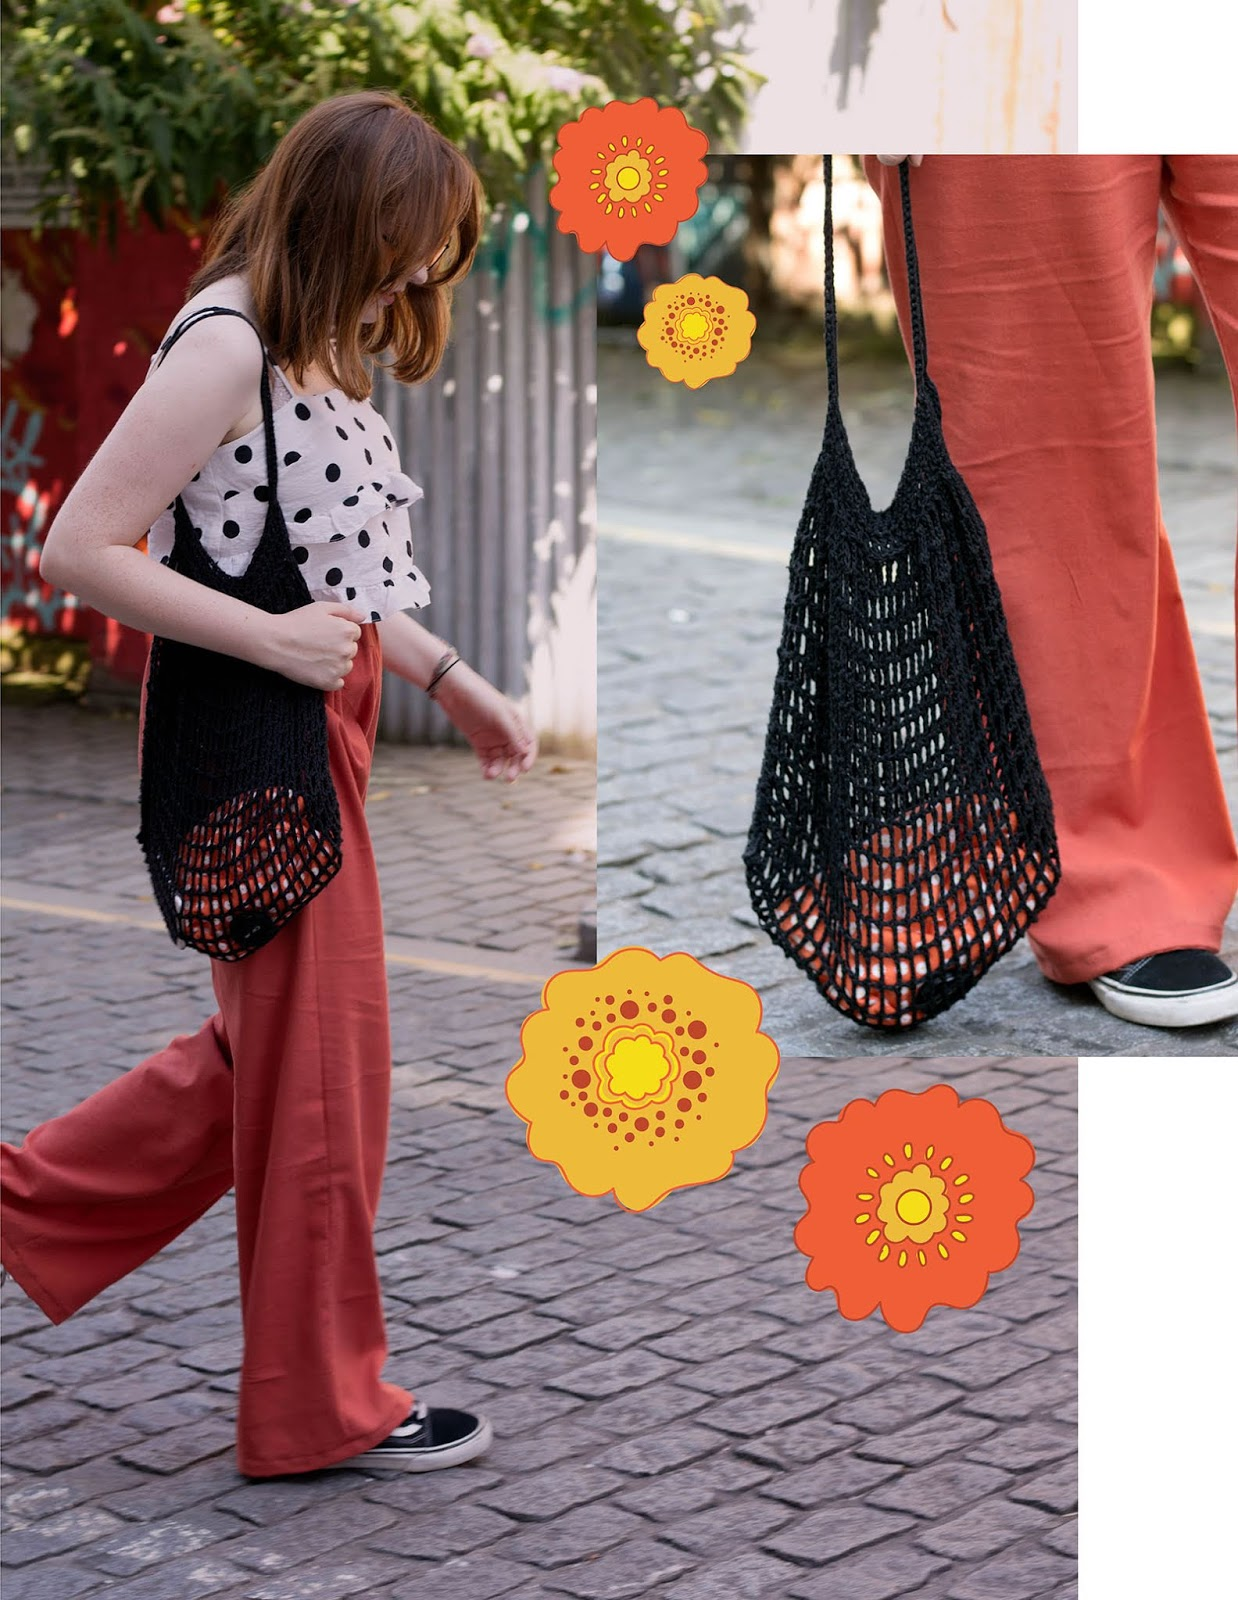 seventies style outfit for summer by liverpool uk style blogger allie davies featuring black mesh knitted beach bag